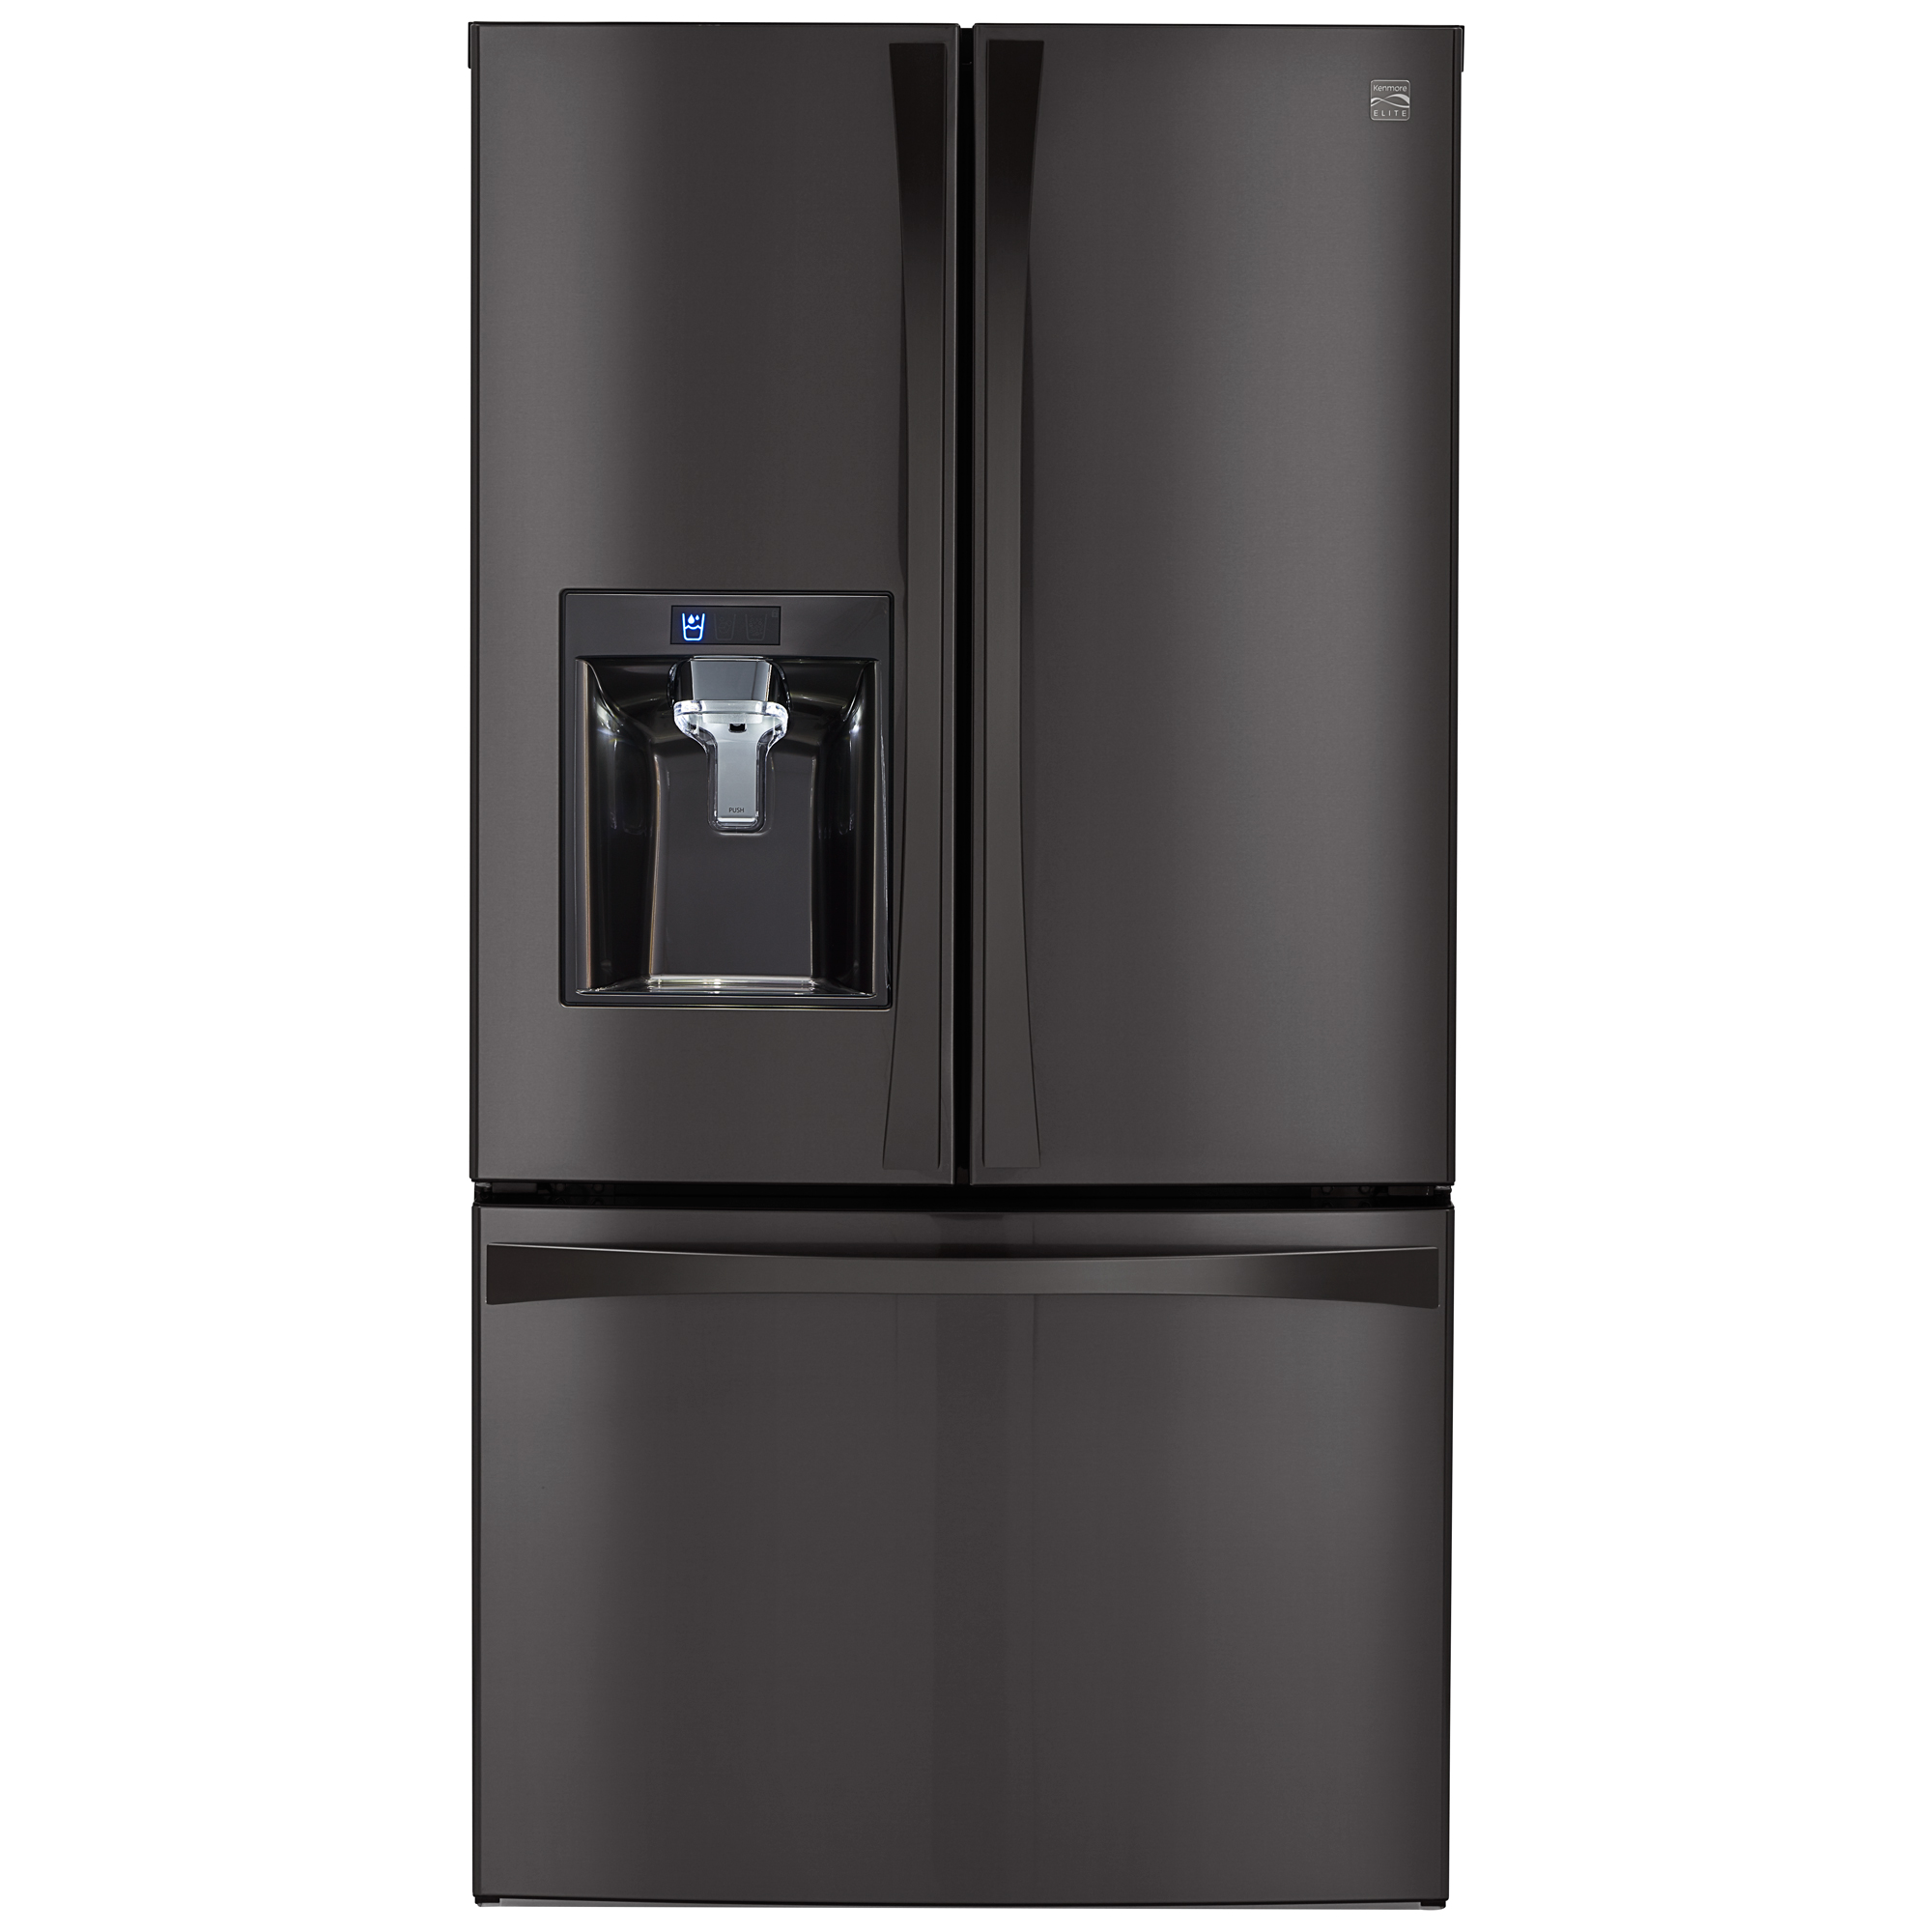 Kenmore Elite French Door Bottom Freezer Refrigerator